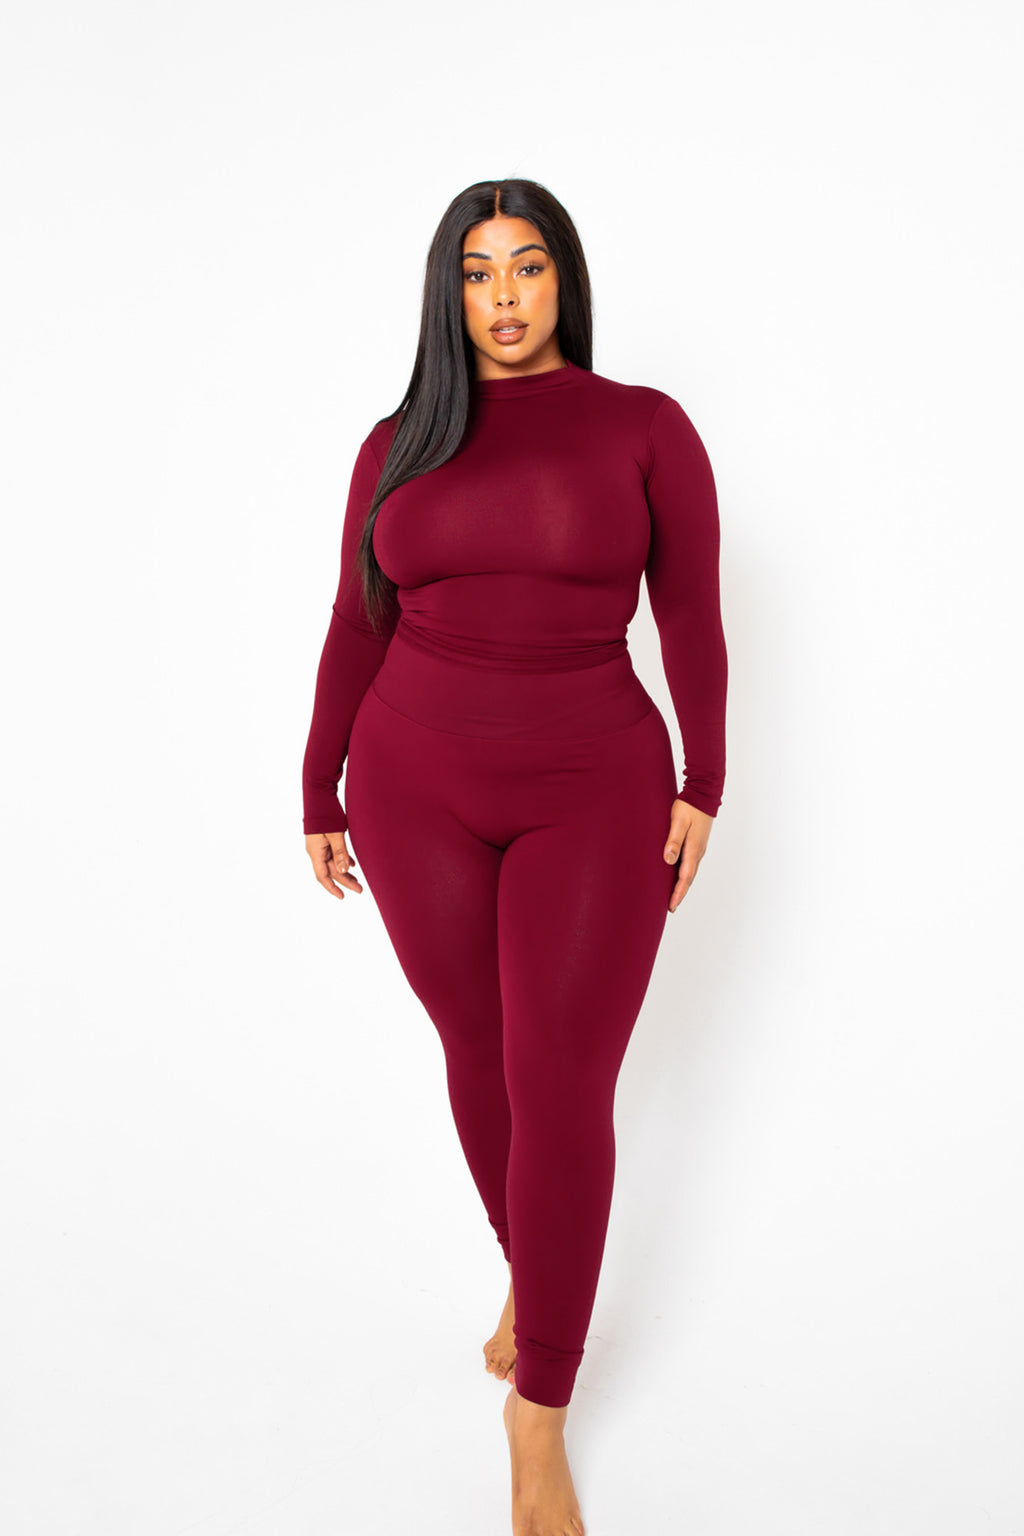 The Burgundy Yoga Tummy Control Legging fits up to PLUS! (choose your size)